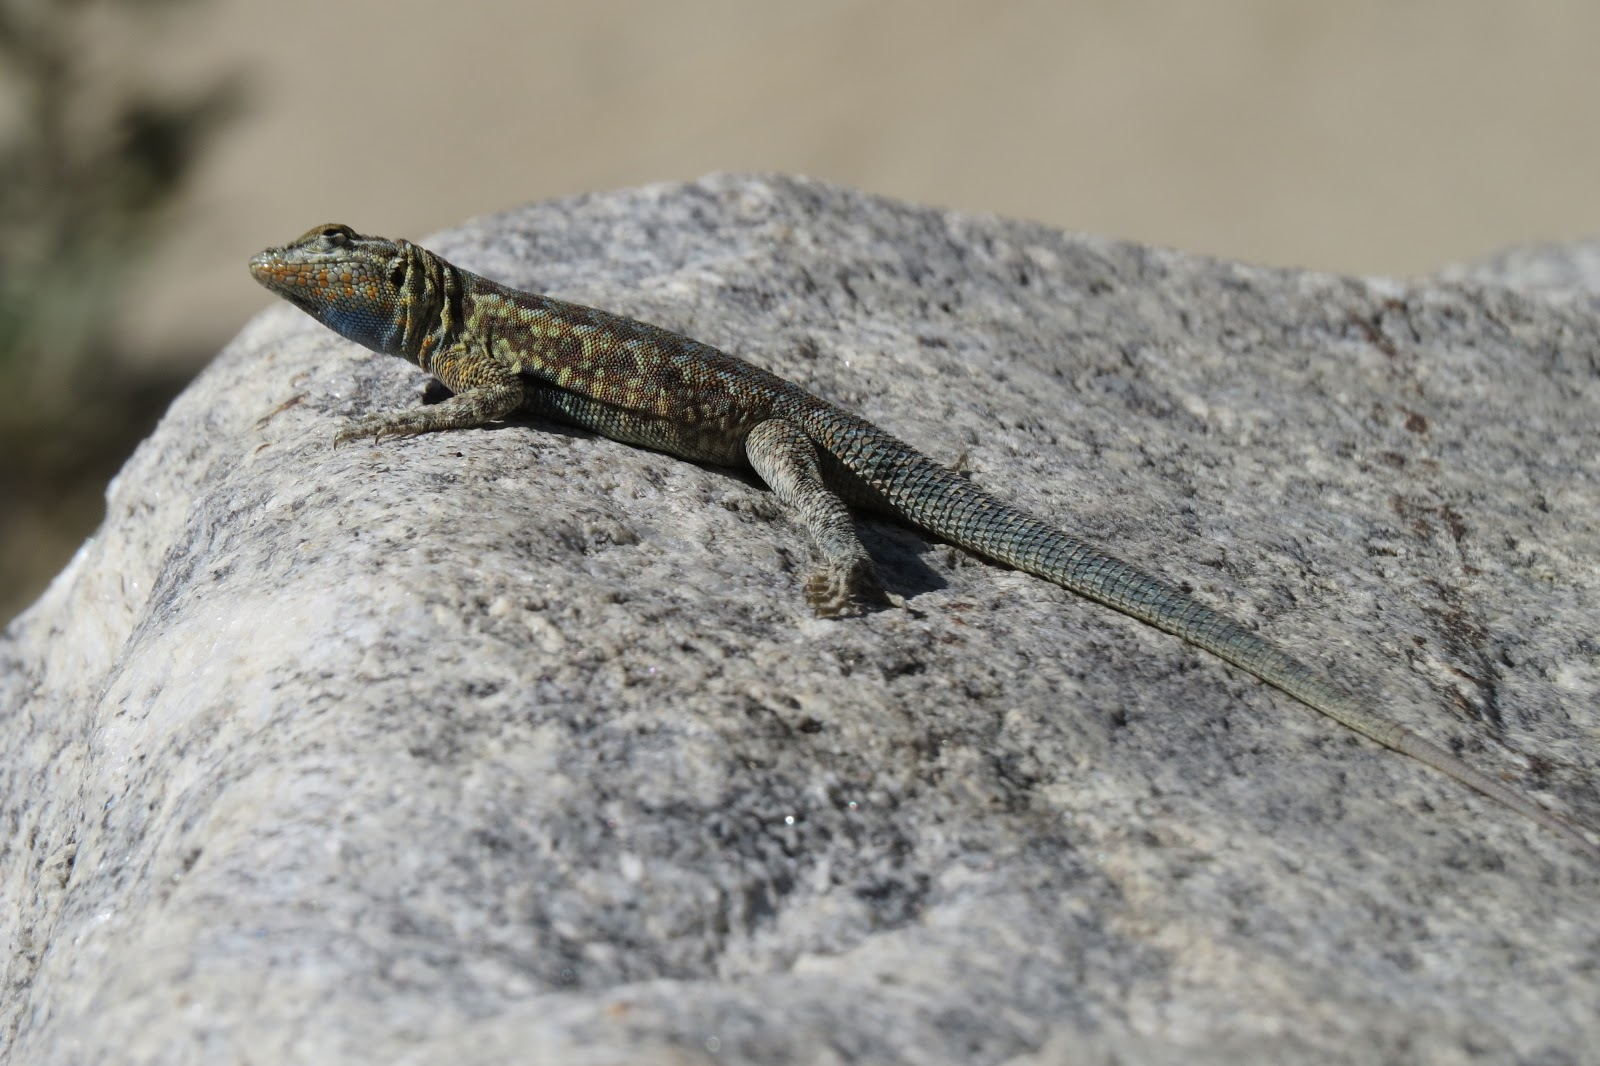 Indian Canyon lizard